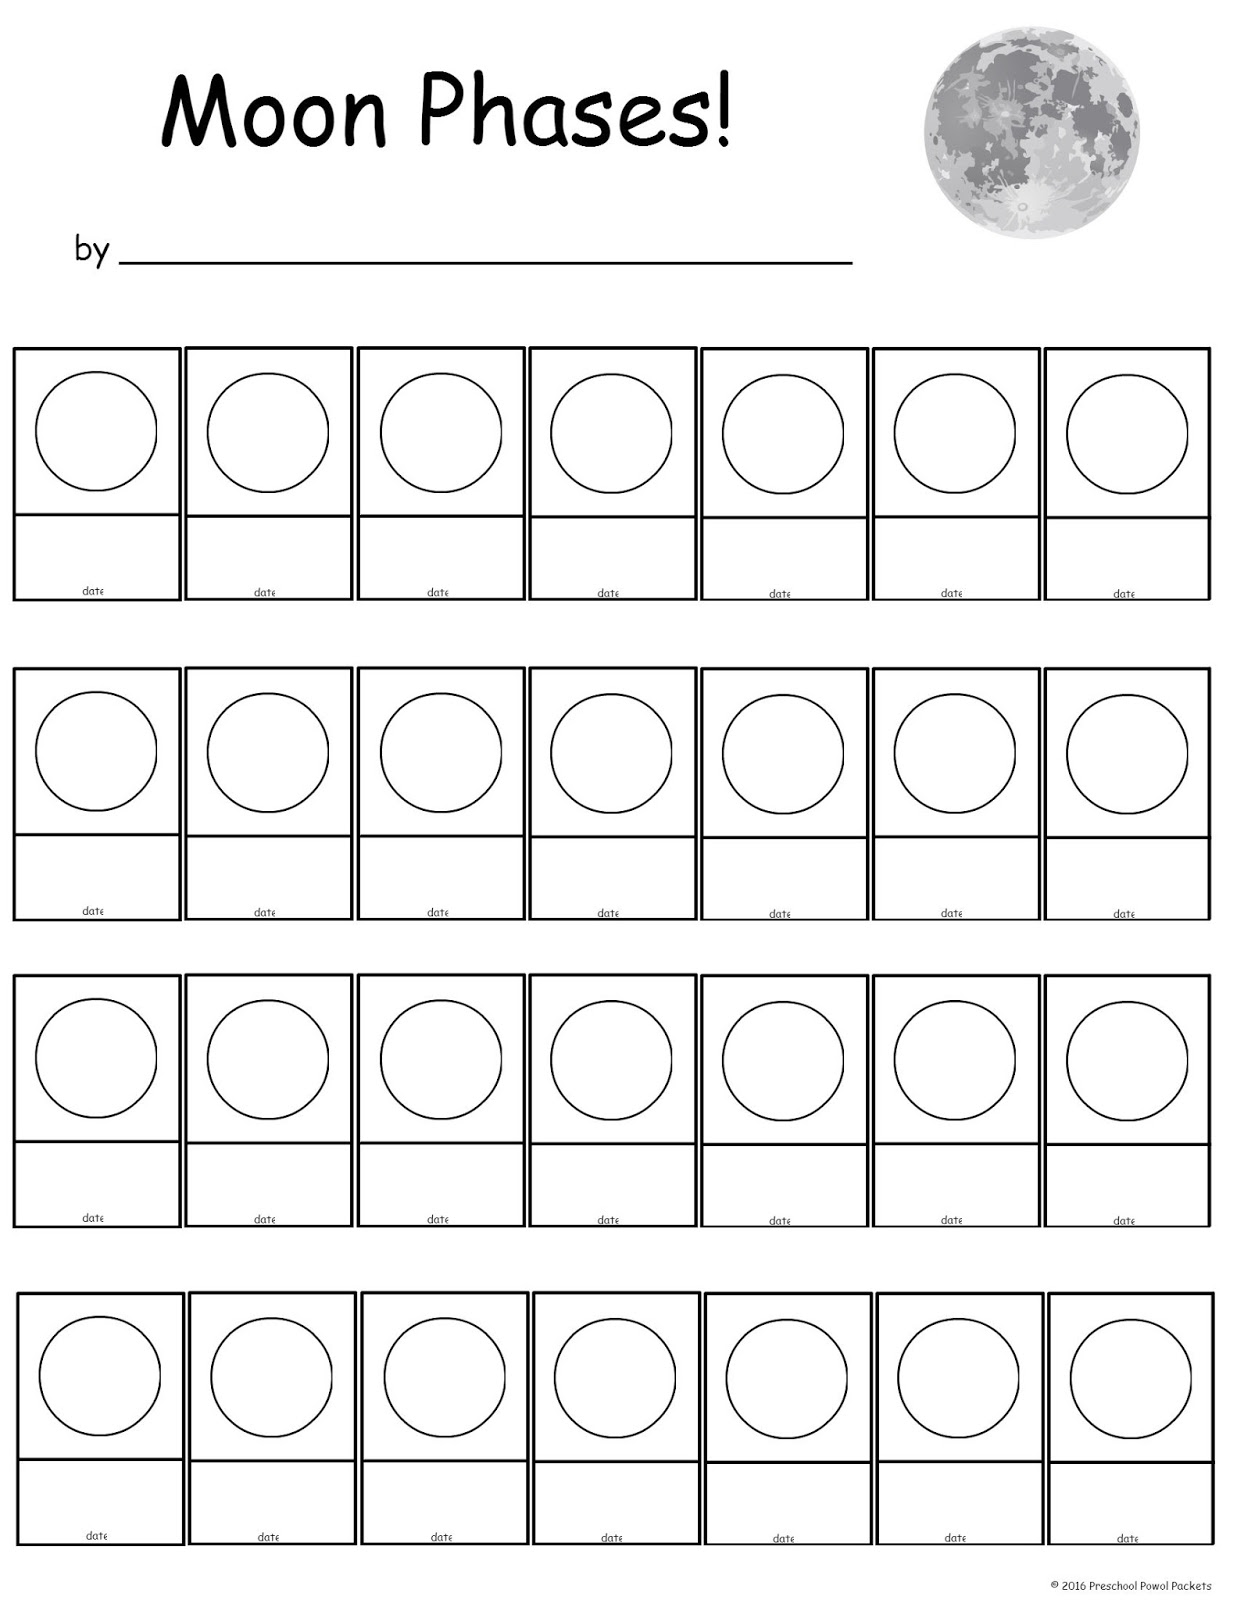 photograph relating to Moon Phases Printable named Cost-free Moon Stage Monitoring Printable! Preschool Powol Packets